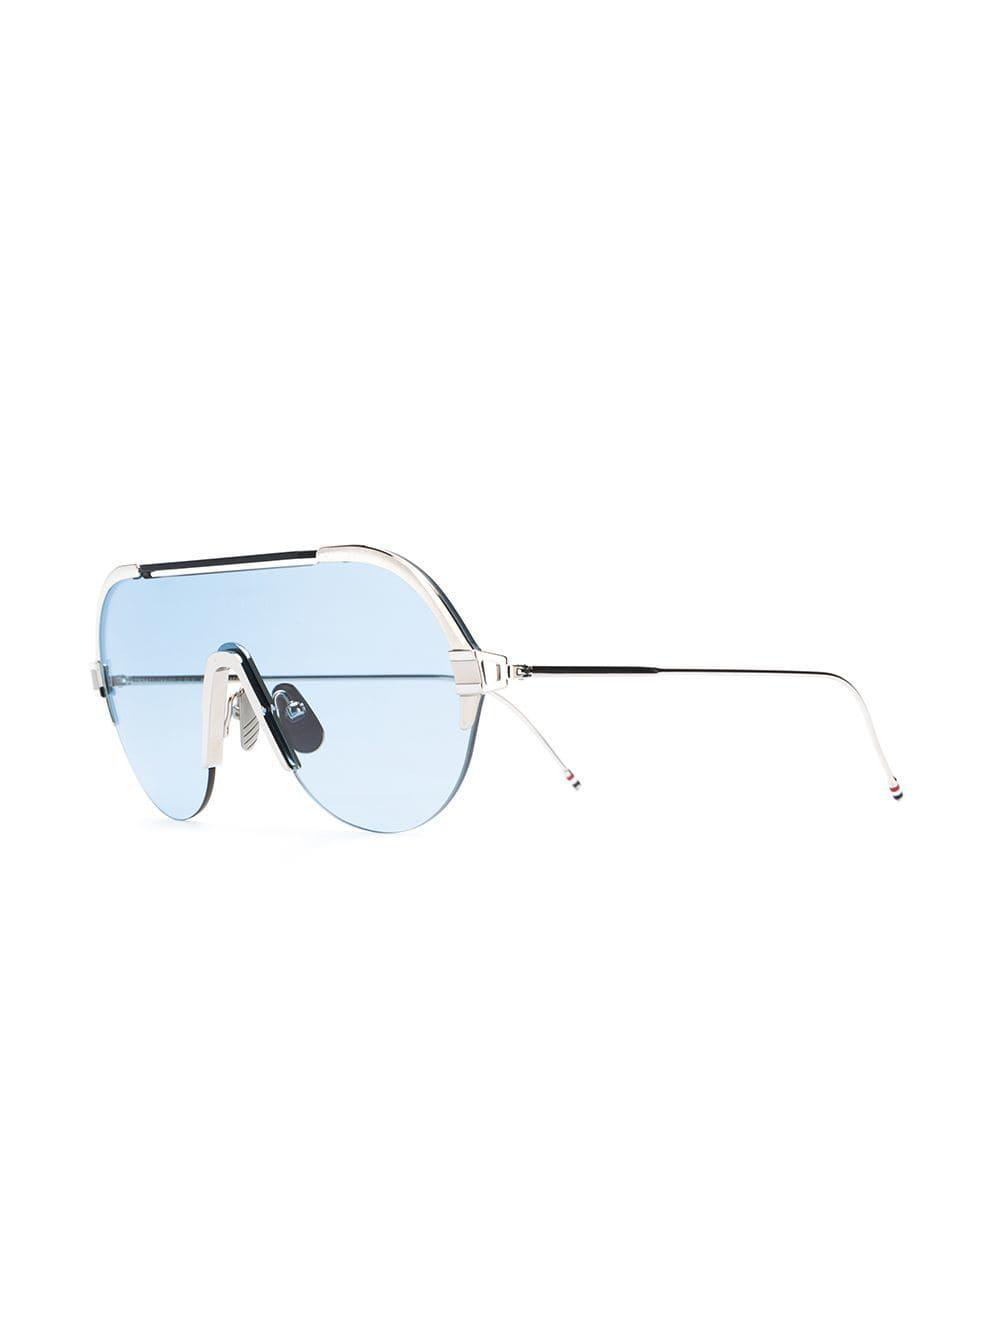 ade78c01f3 Lyst - Thom Browne Silver   Navy Sunglasses in Metallic for Men